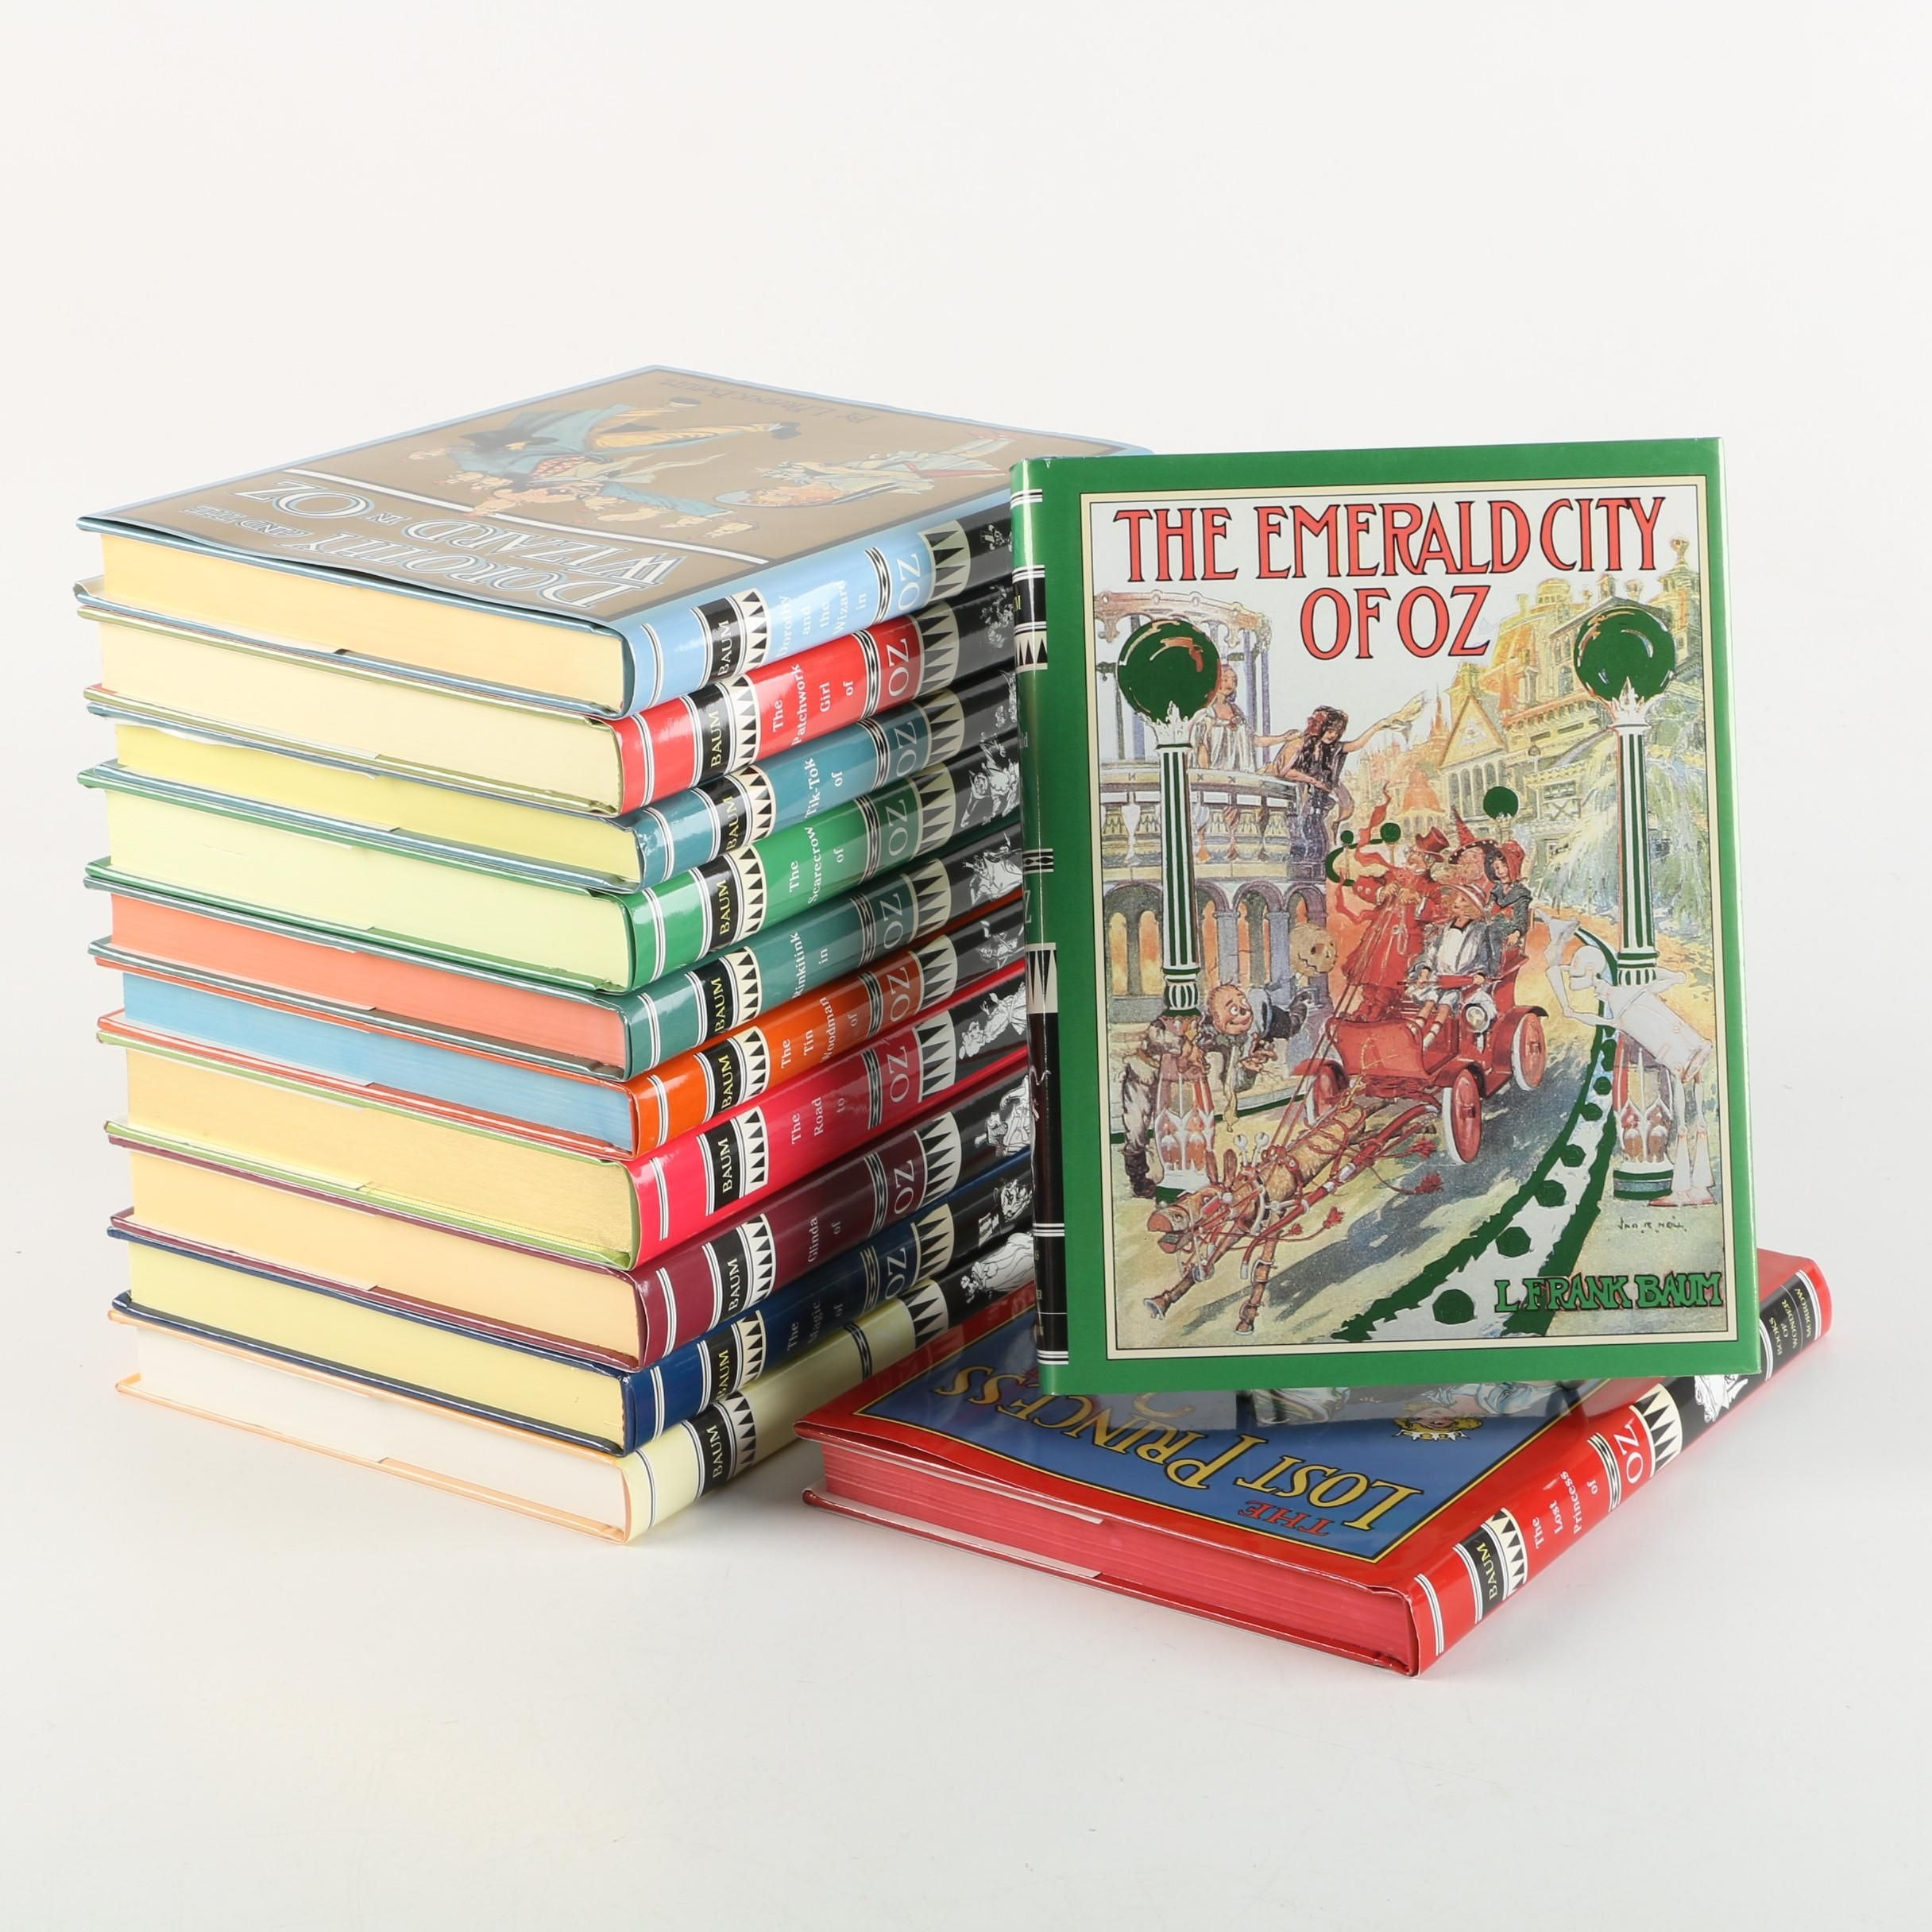 L. Frank Baum Books From the Oz Series